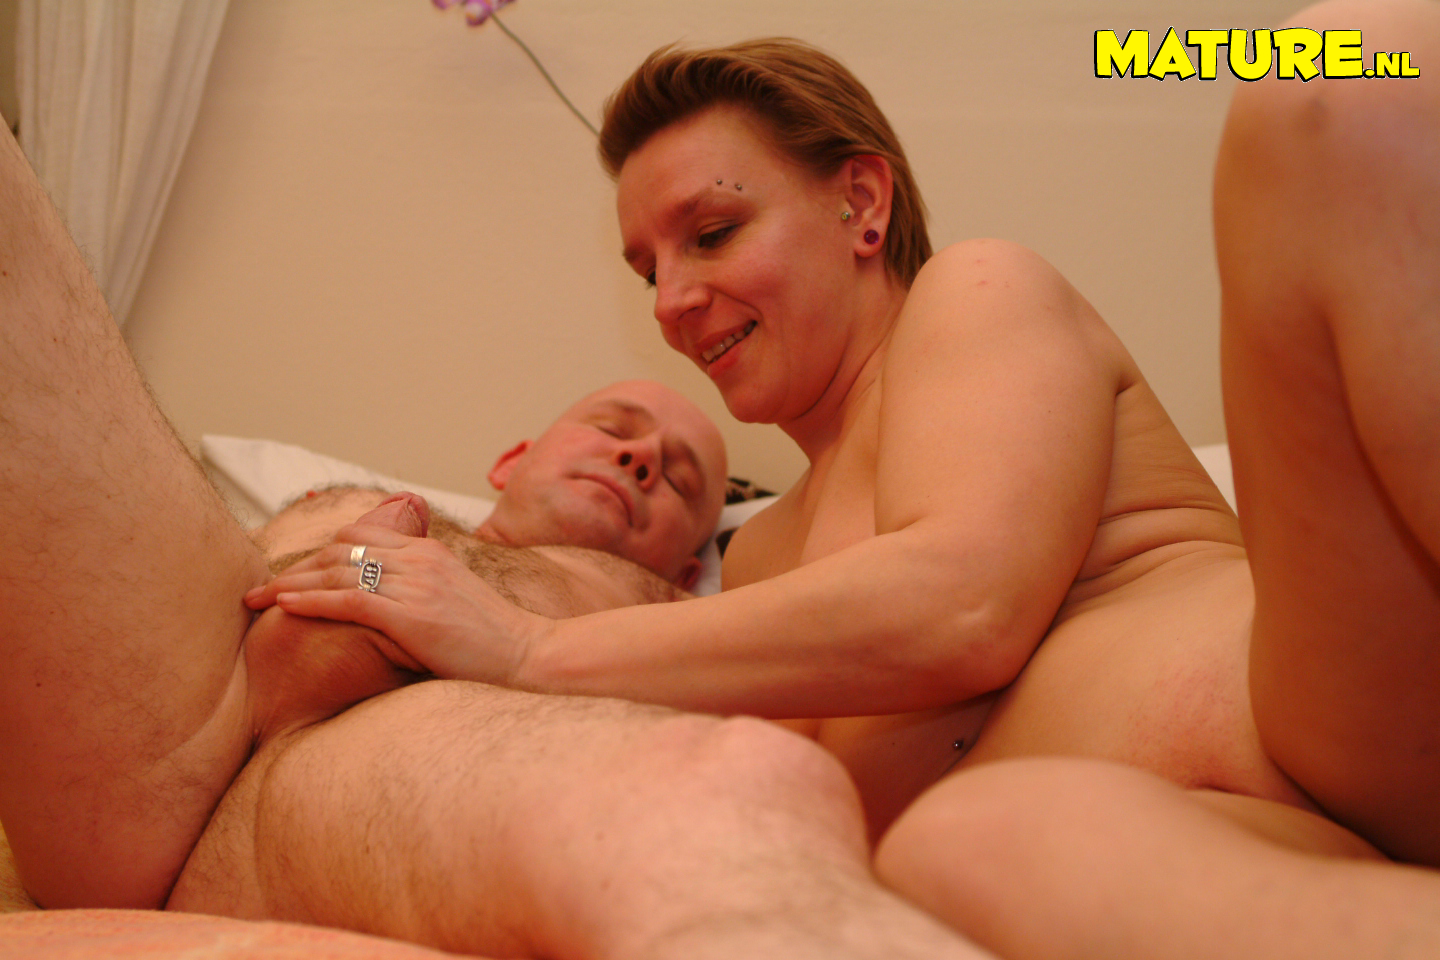 mature senior sex couple videos - other